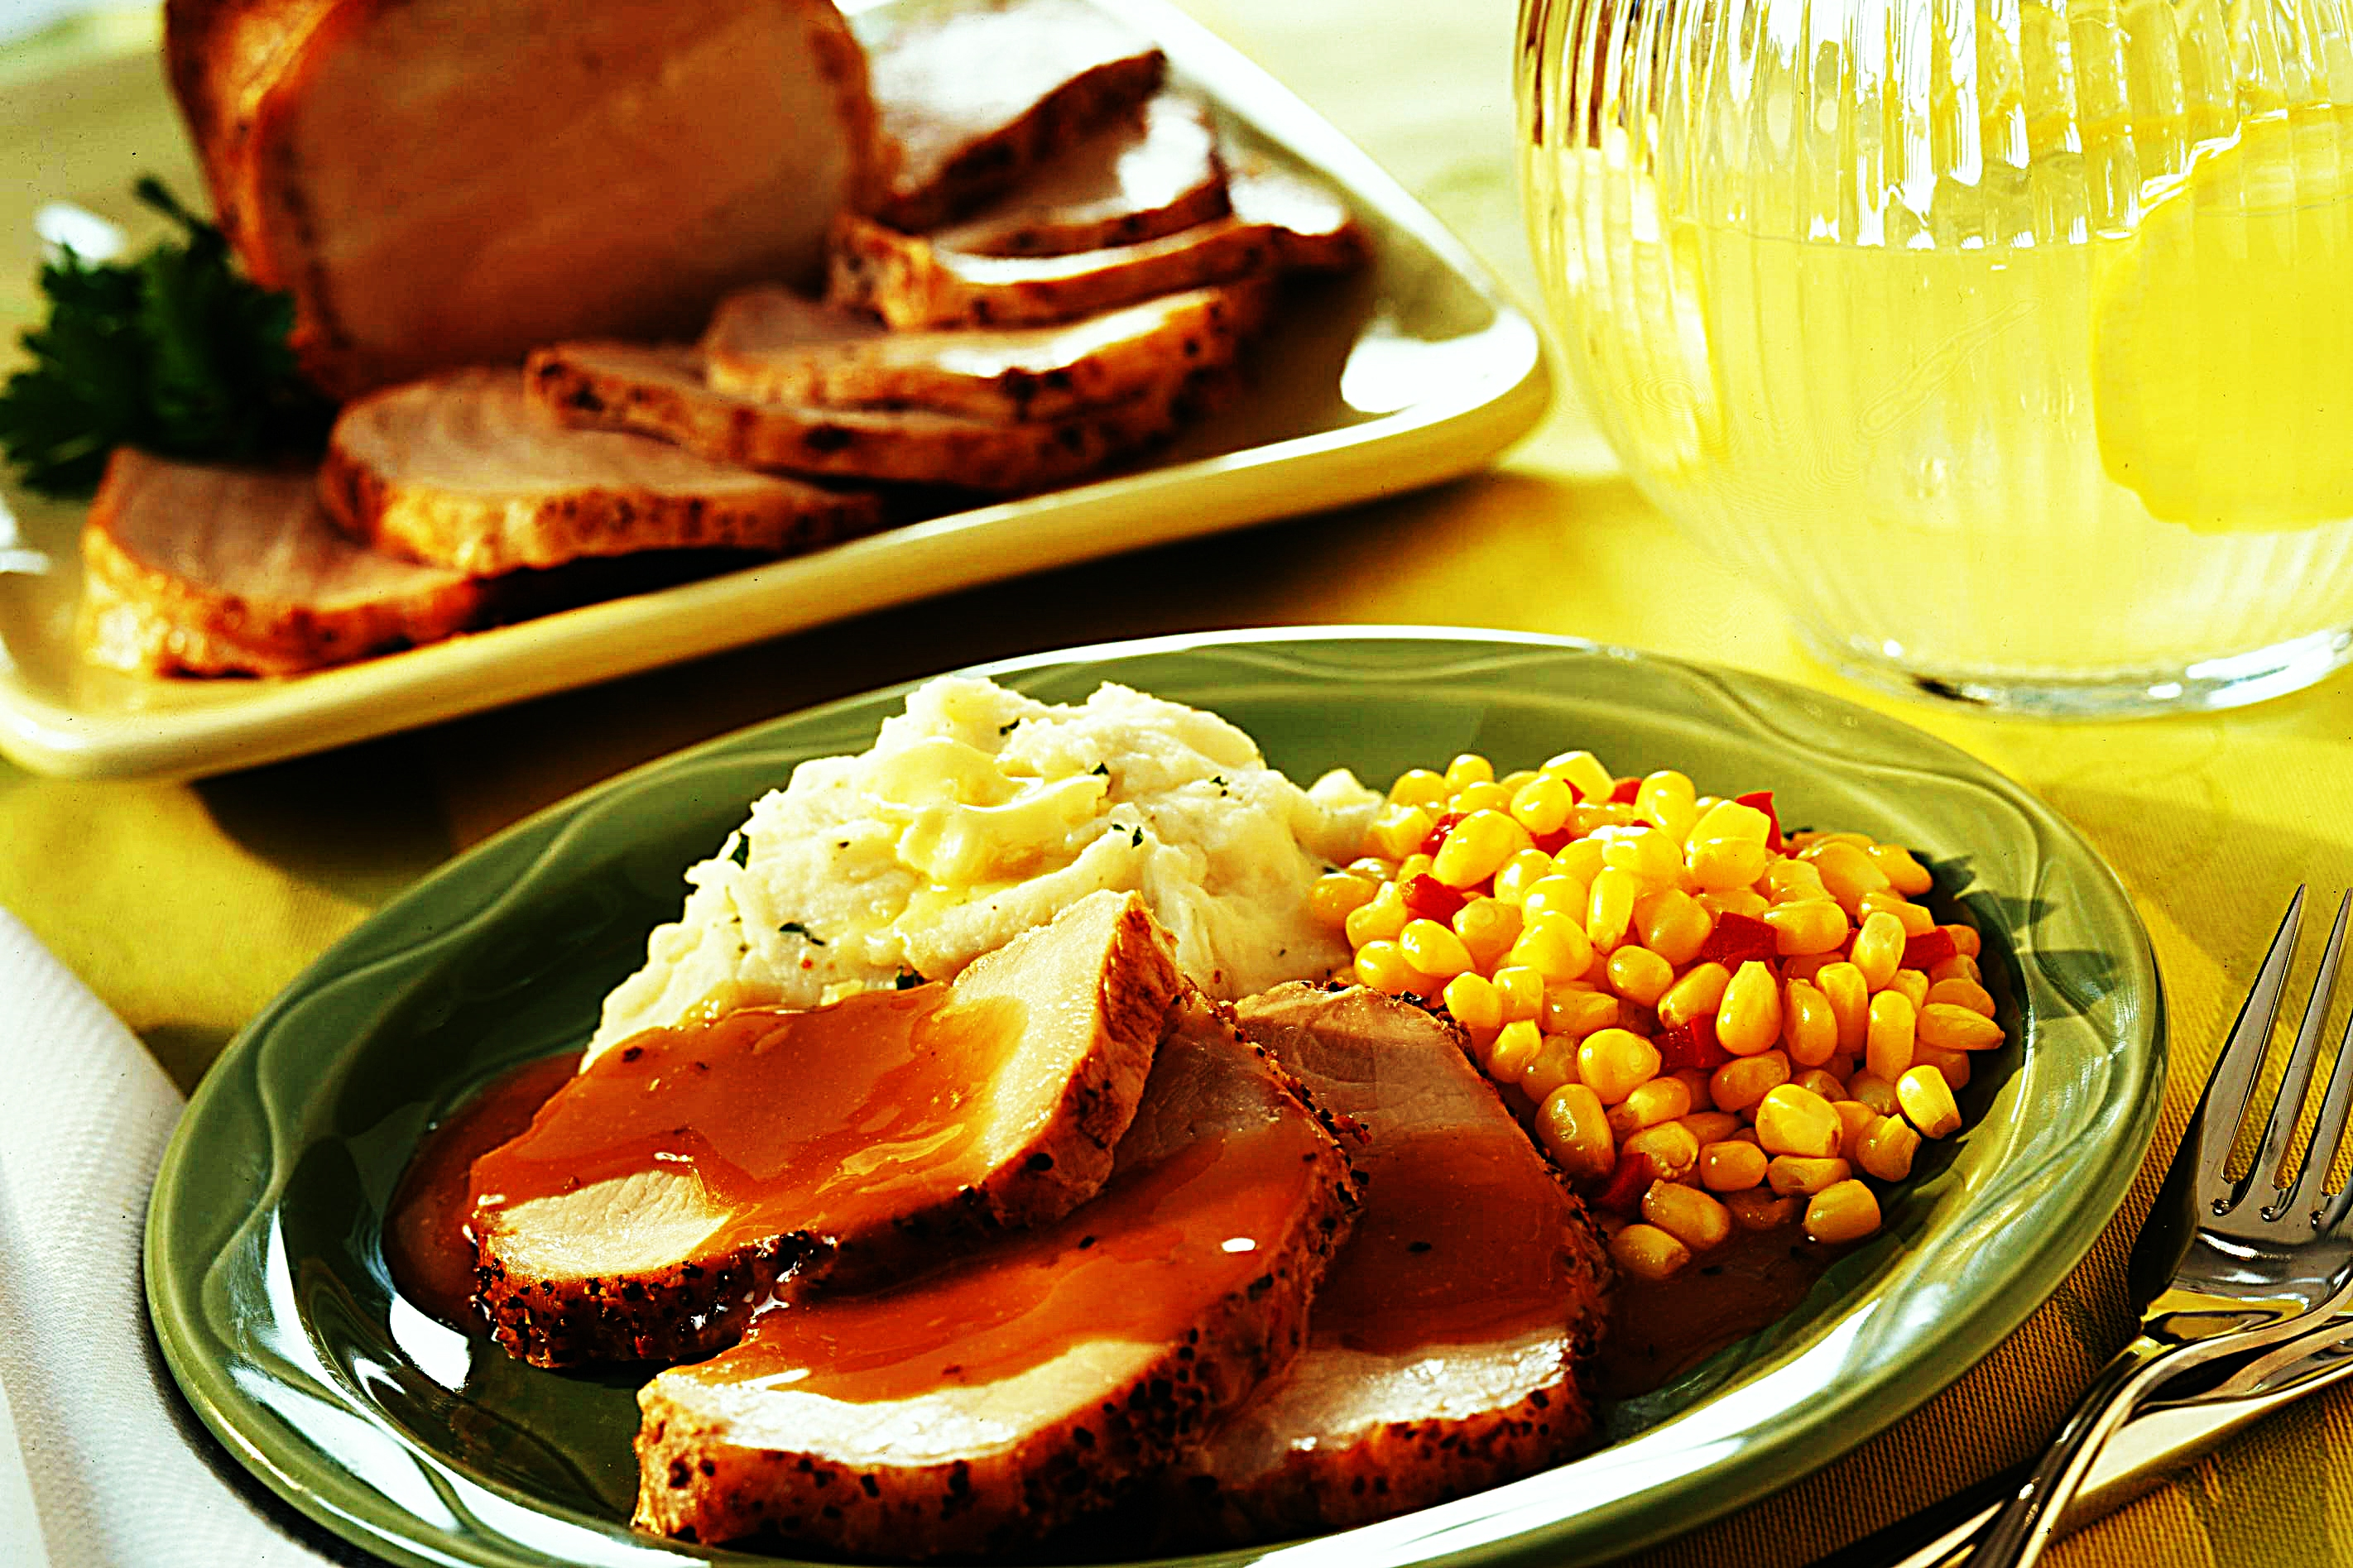 Stupid-Easy Recipe for Peppered Pork Roast (#1 Top-Rated)